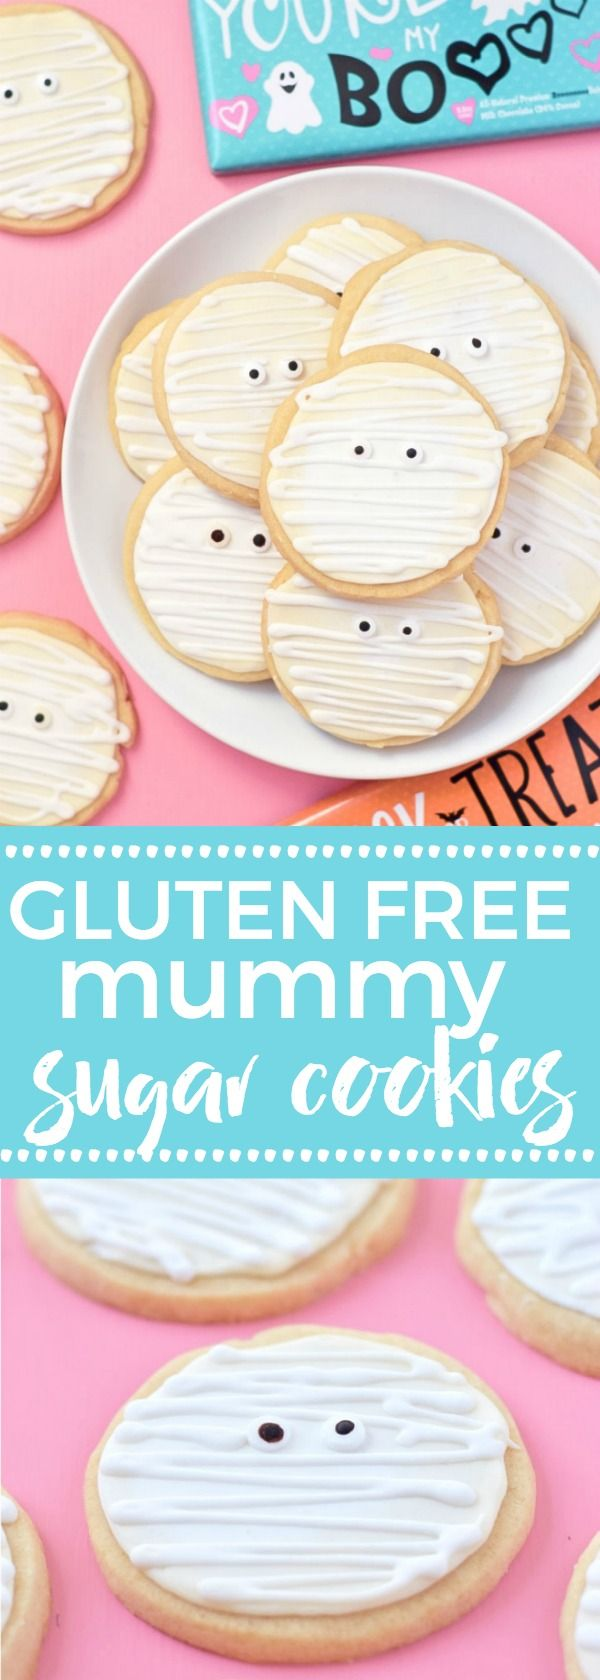 Gluten Free Mummy Cookies are a fun treat for Halloween parties. Made with gluten free and dairy free sugar cookies and an easy royal icing for decorating.